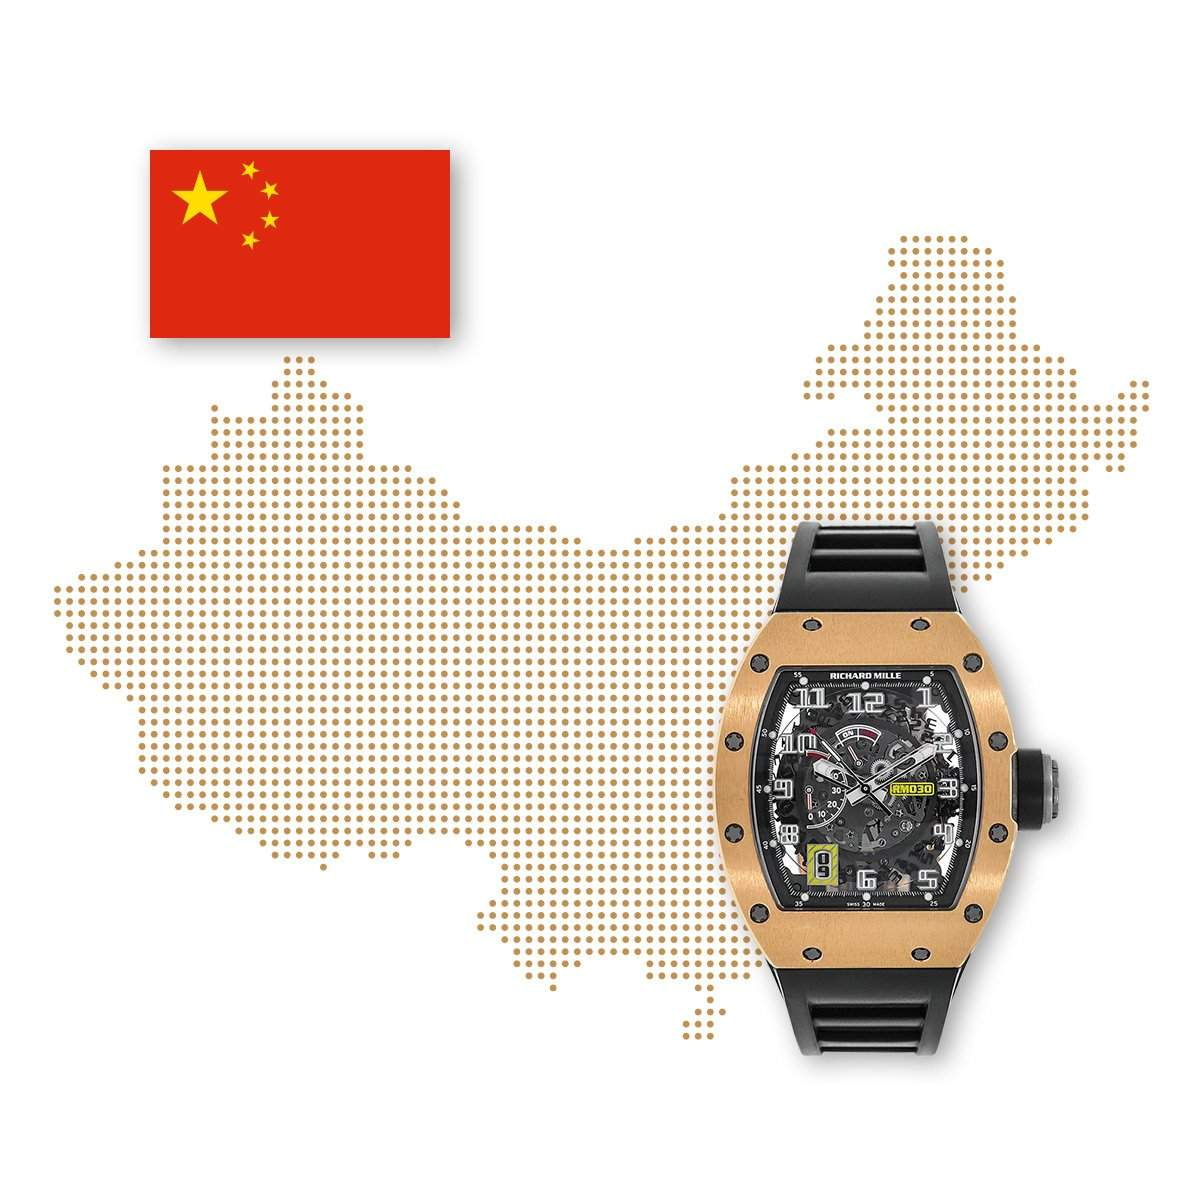 Chrono24 buyers from China often search for luxury brands including Audemars Piguet, Patek Philippe, and Richard Mille.